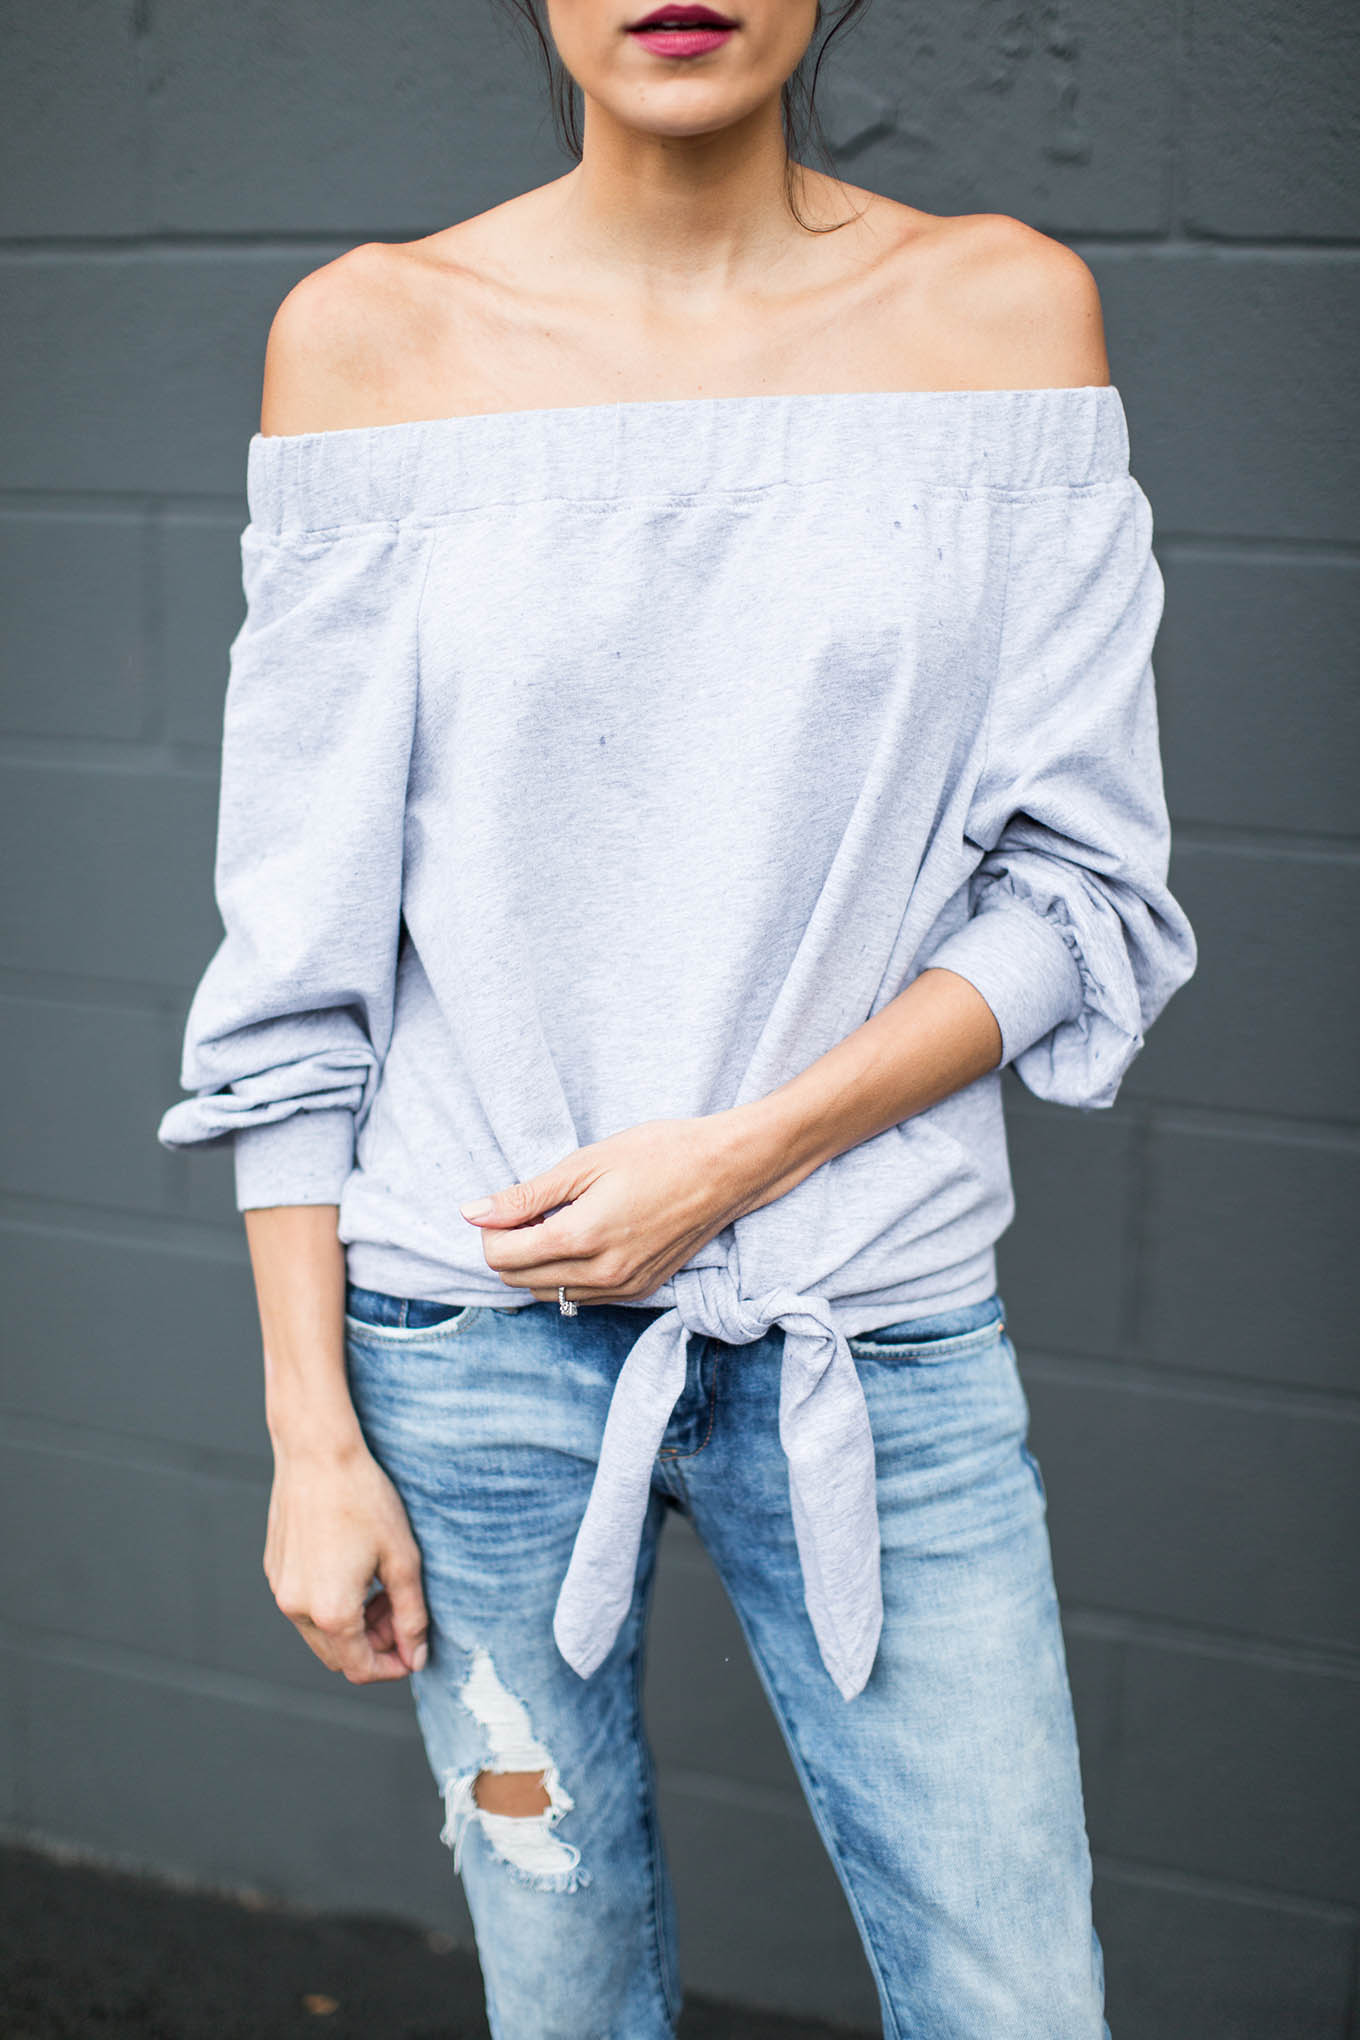 ily couture grey off-the-shoulder